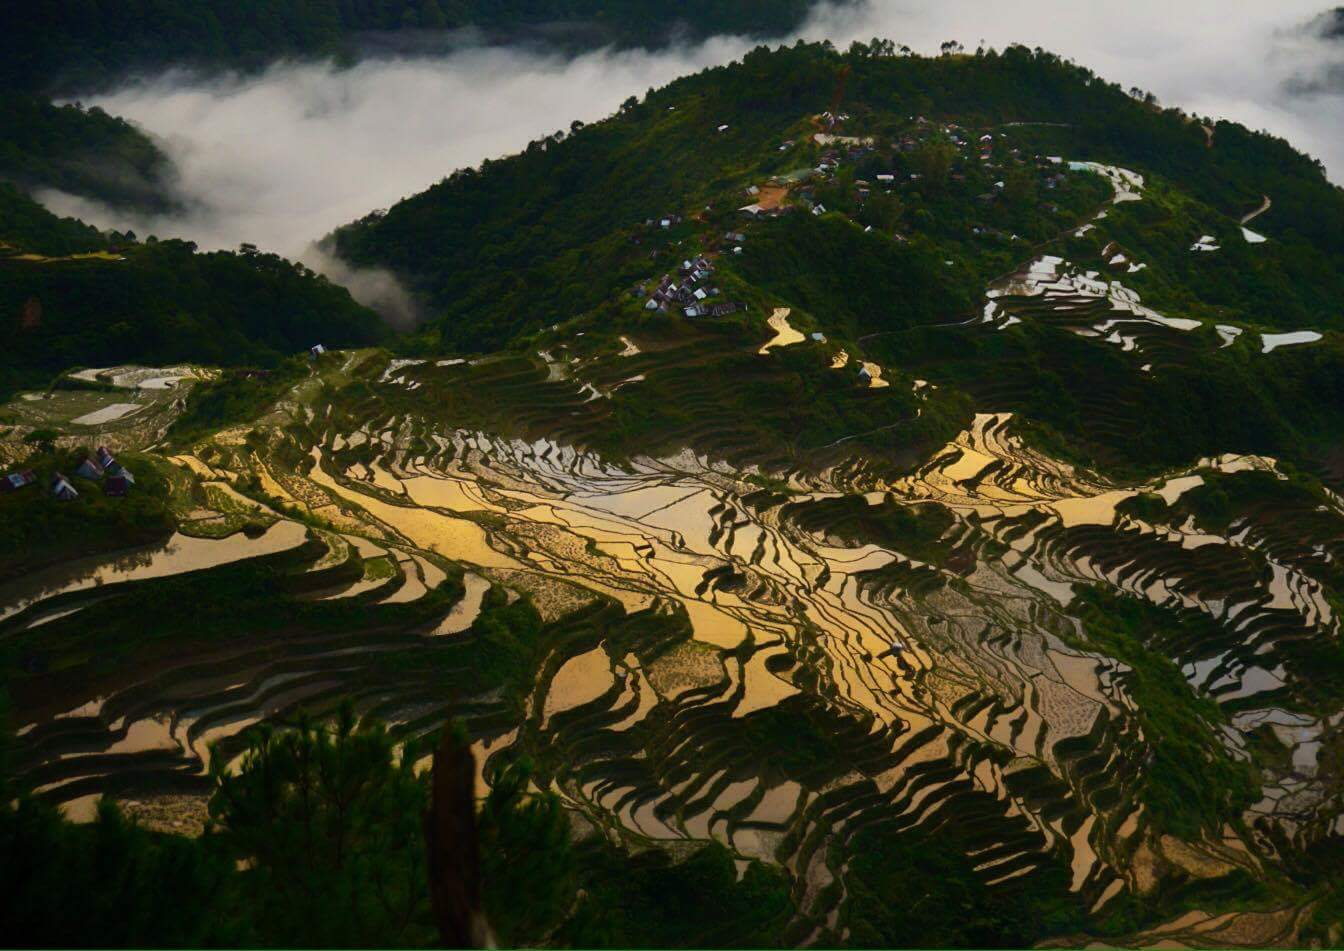 Maligcong Rice Terraces seen on Mt. Kupapey